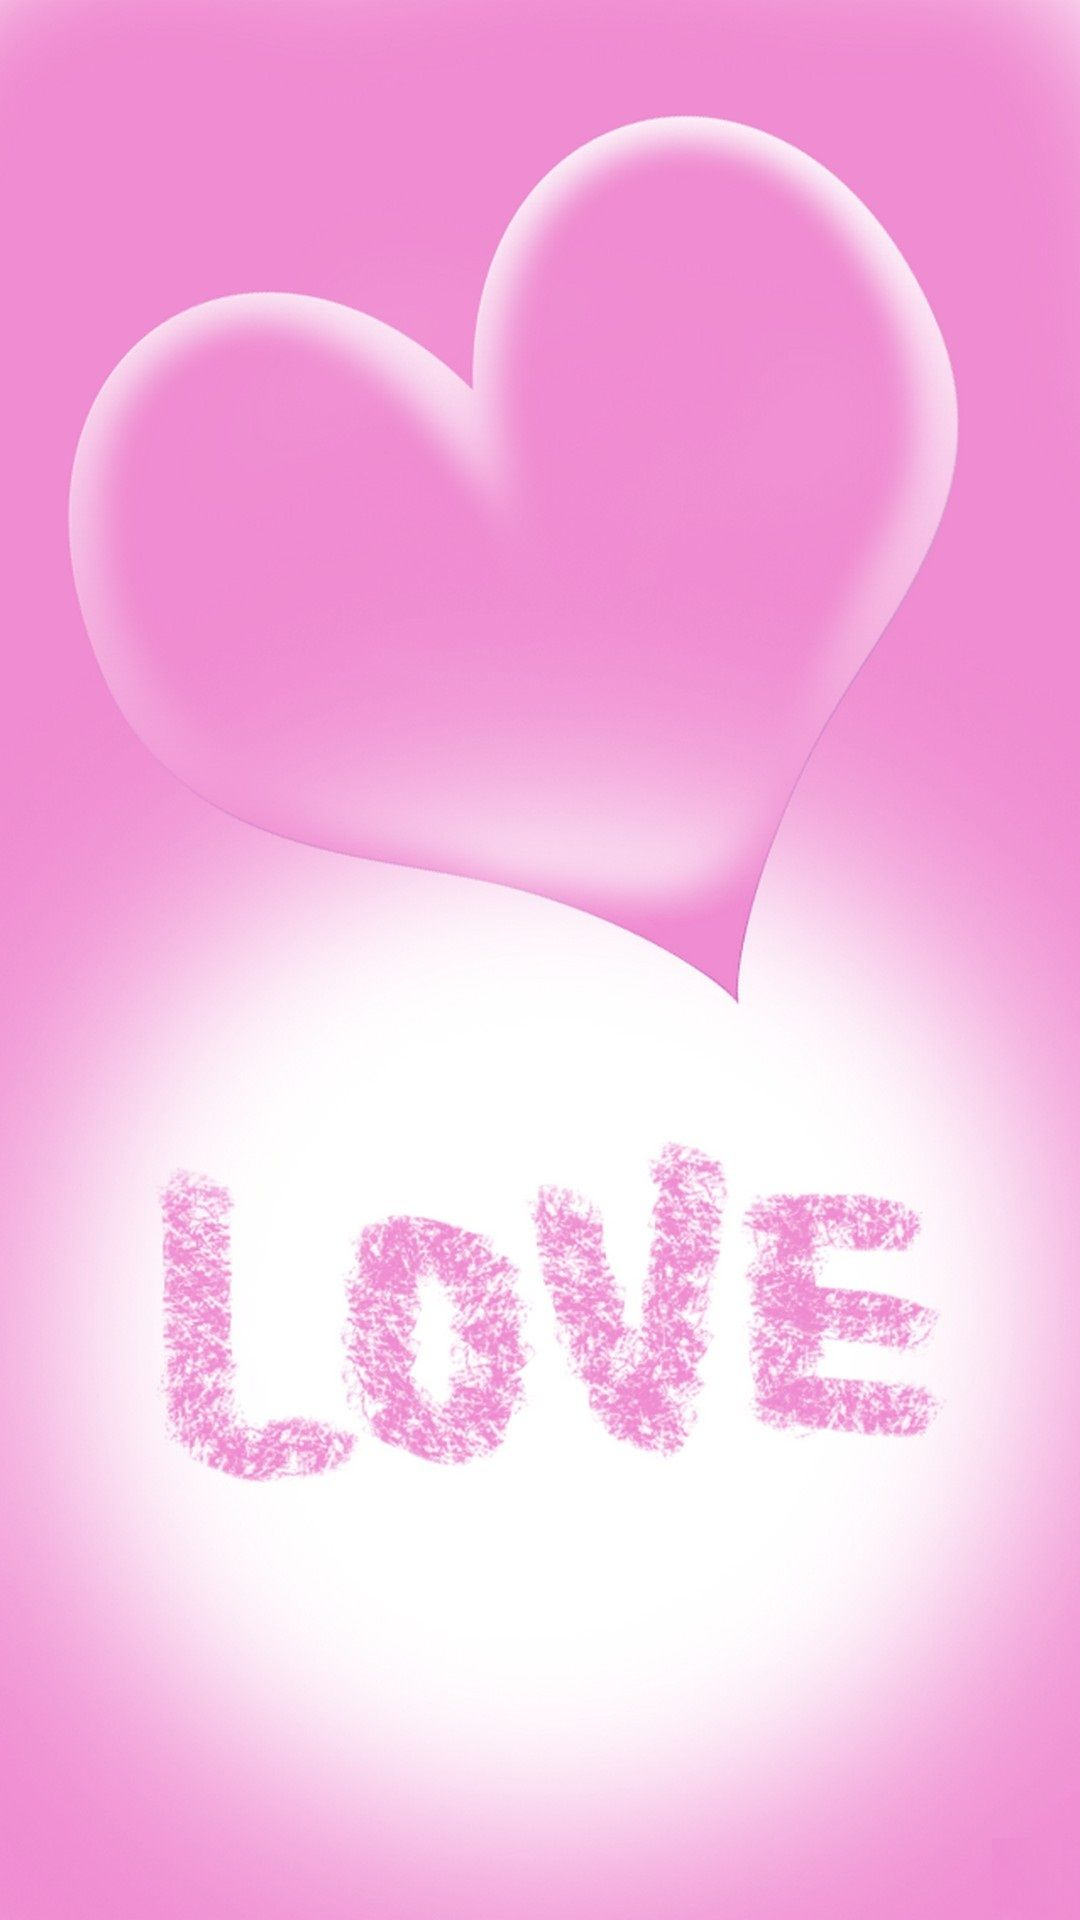 Pink Love Wallpaper Iphone Is The Best High Definition Iphone Wallpaper In